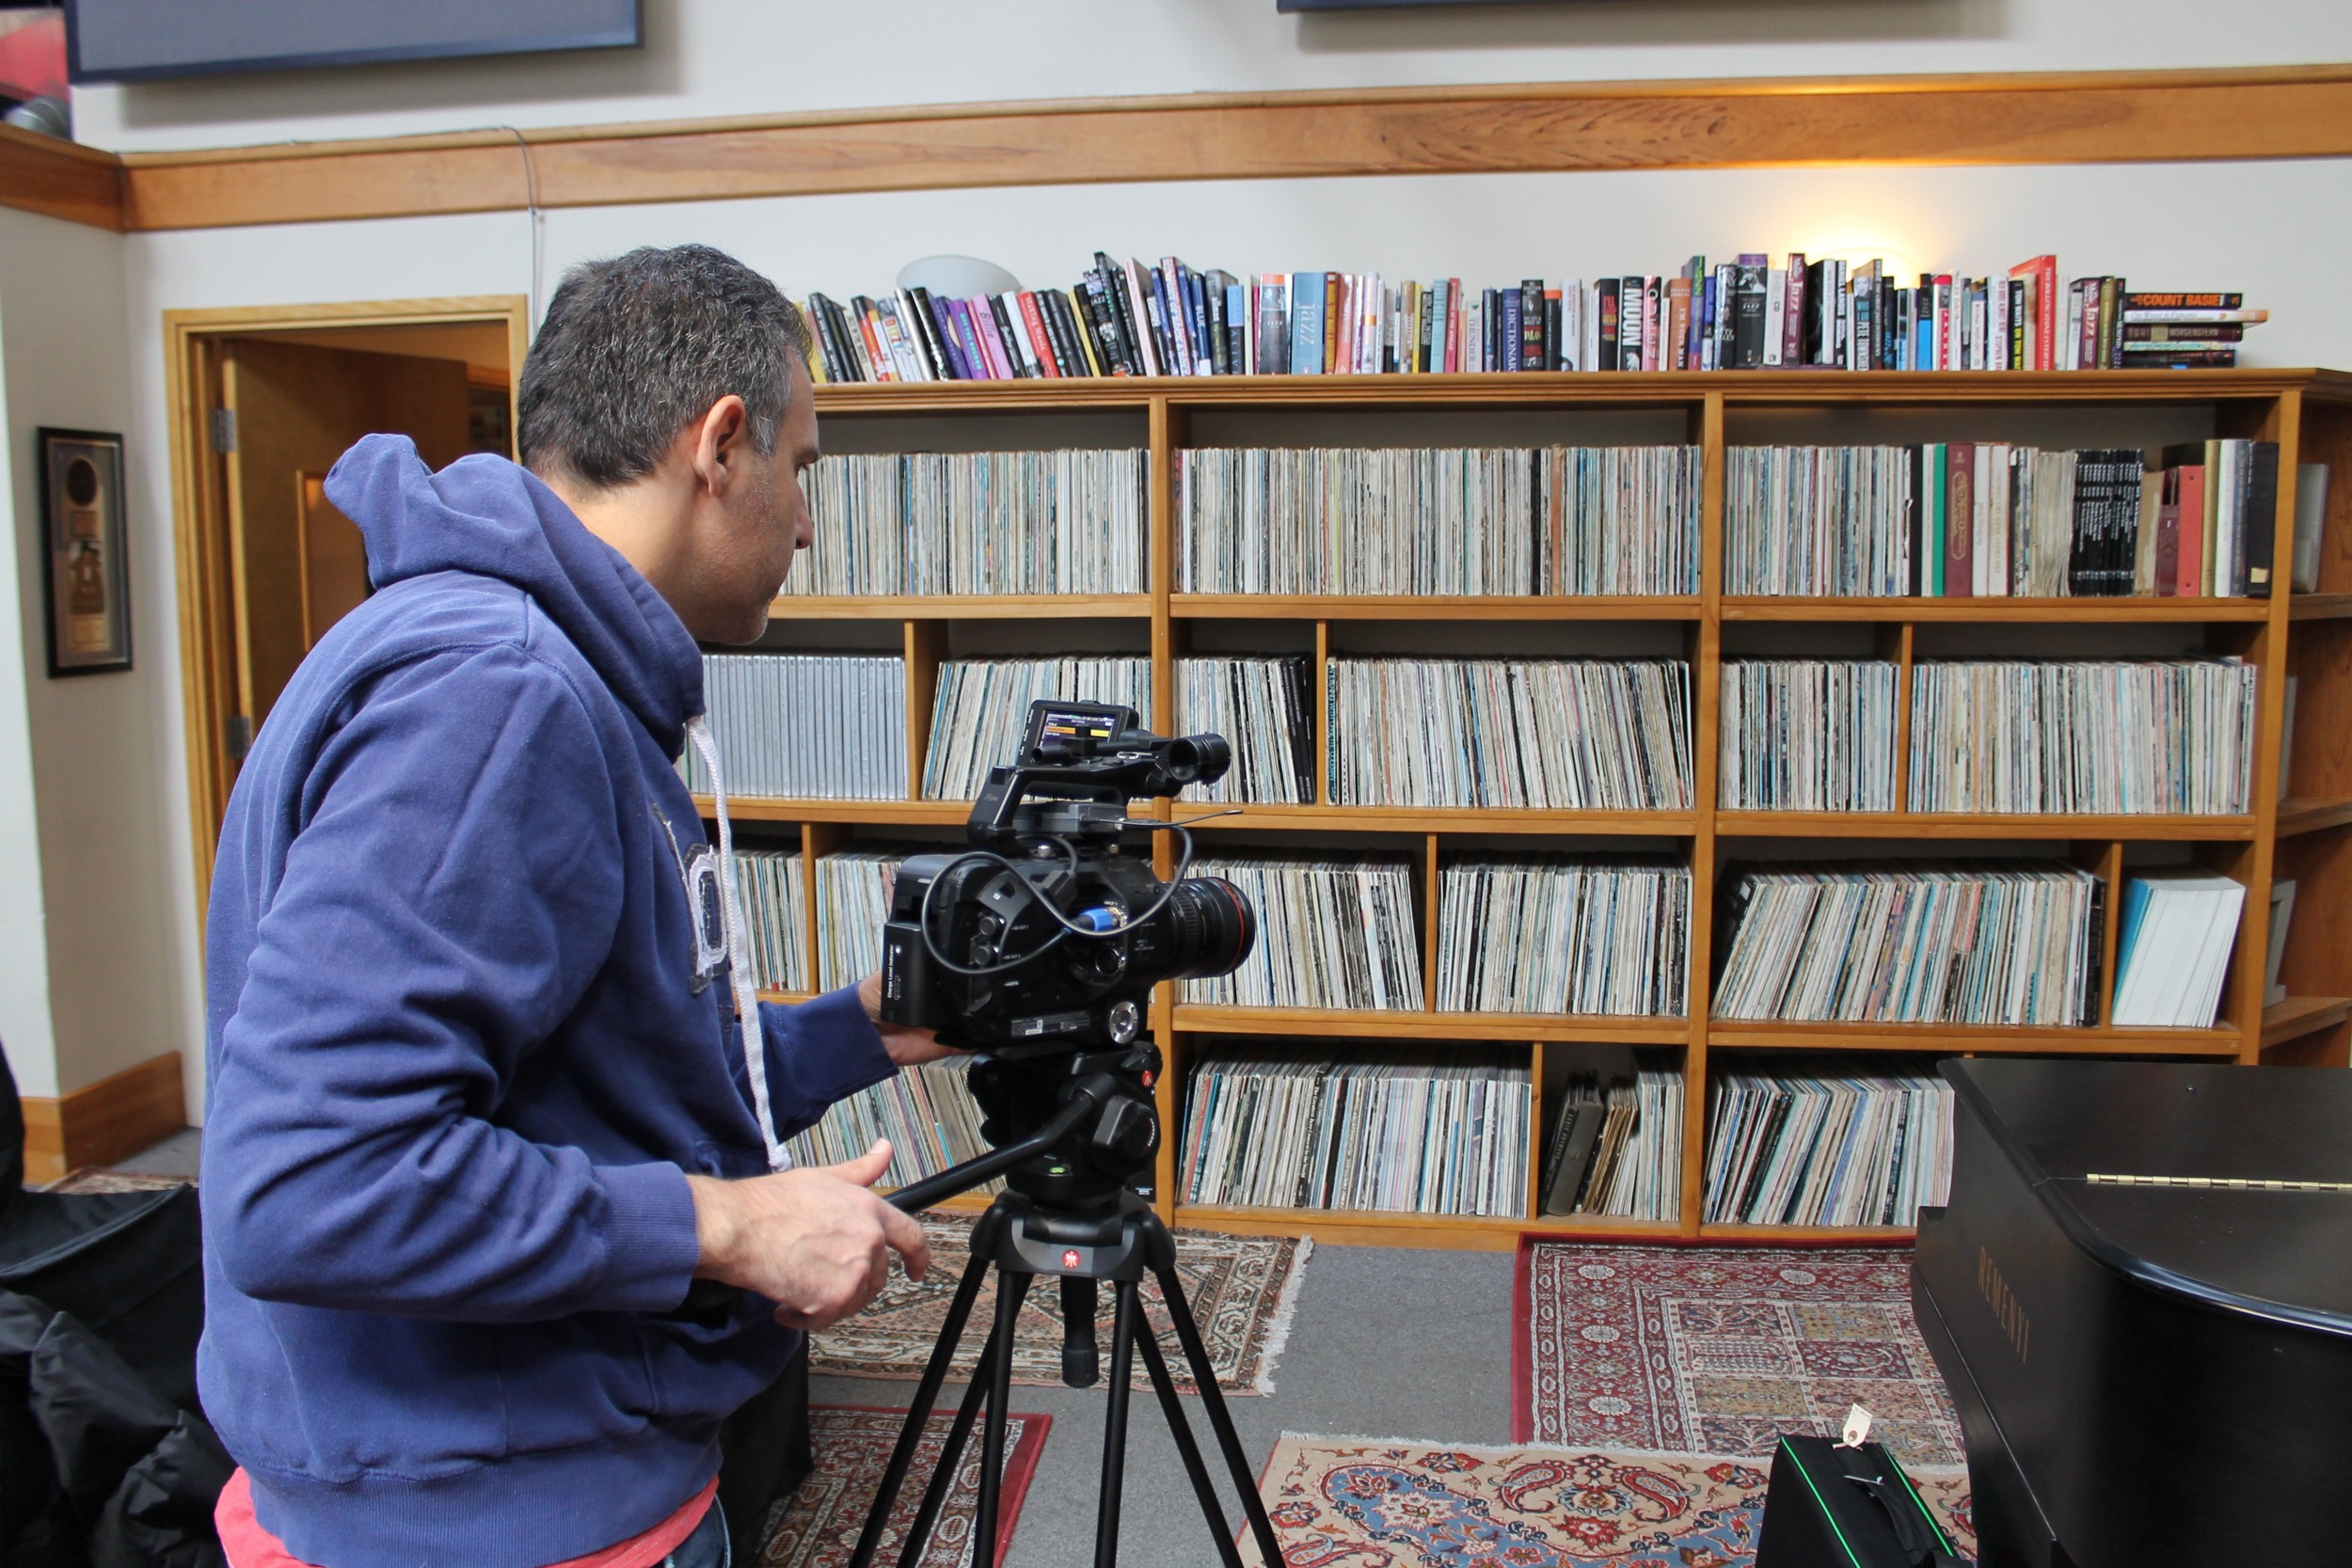 Galloway Film Cinematographer Igal Hecht preparing for Ross Porter Interview at JazzFM91.1 - Mar. 2016